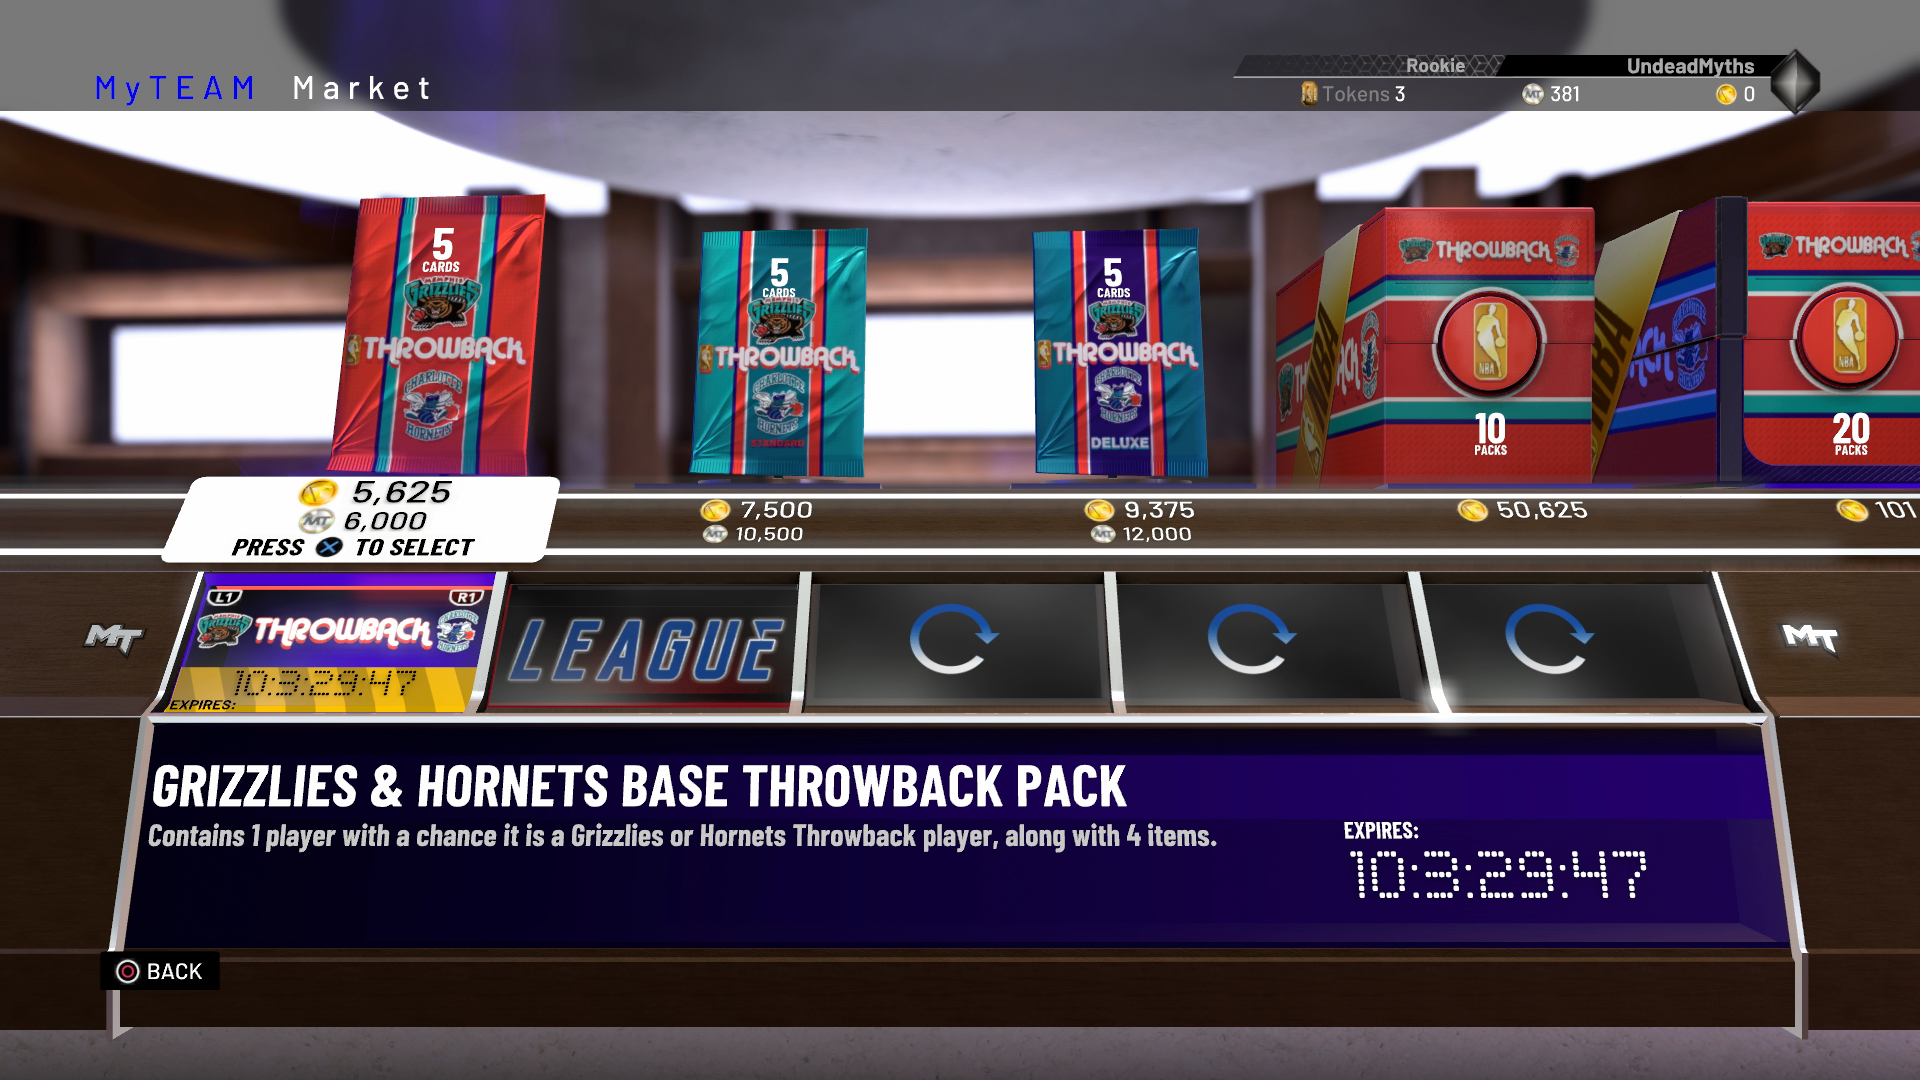 NBA 2K19 VC - How to Earn NBA 2K19 Virtual Currency Quickly